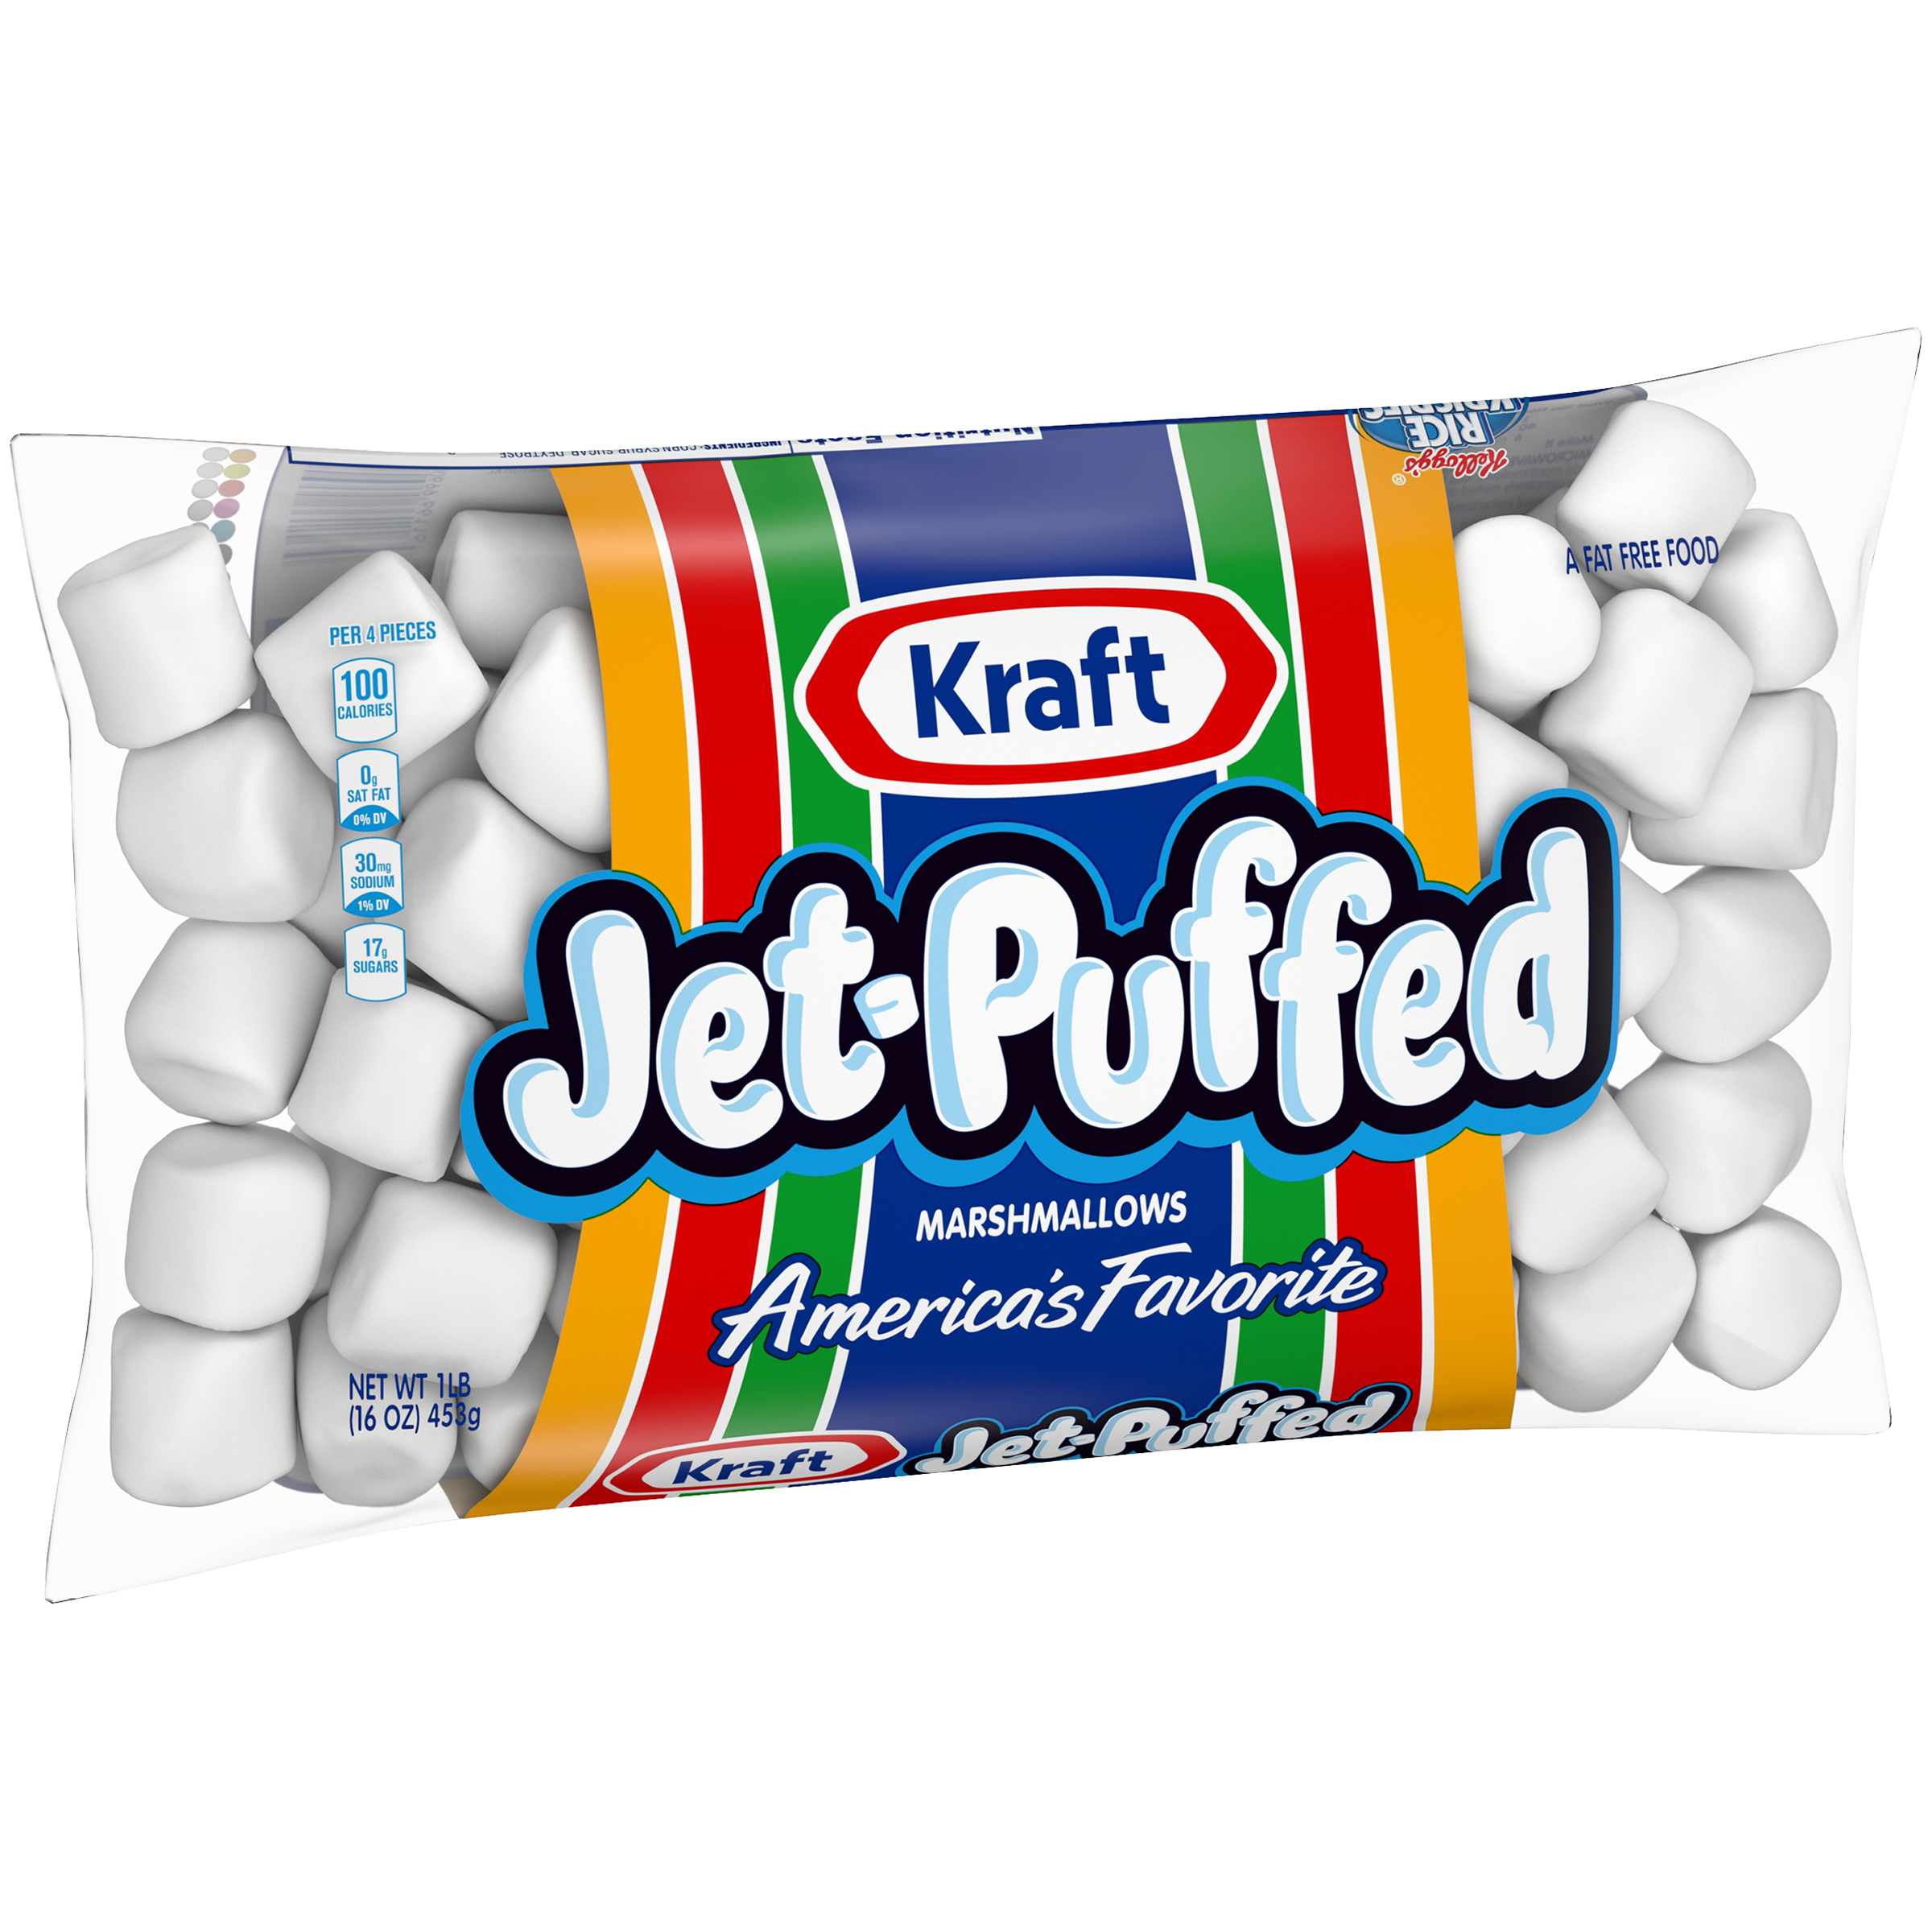 (4 Pack) Jet-Puffed Marshmallows, 16 oz Bag